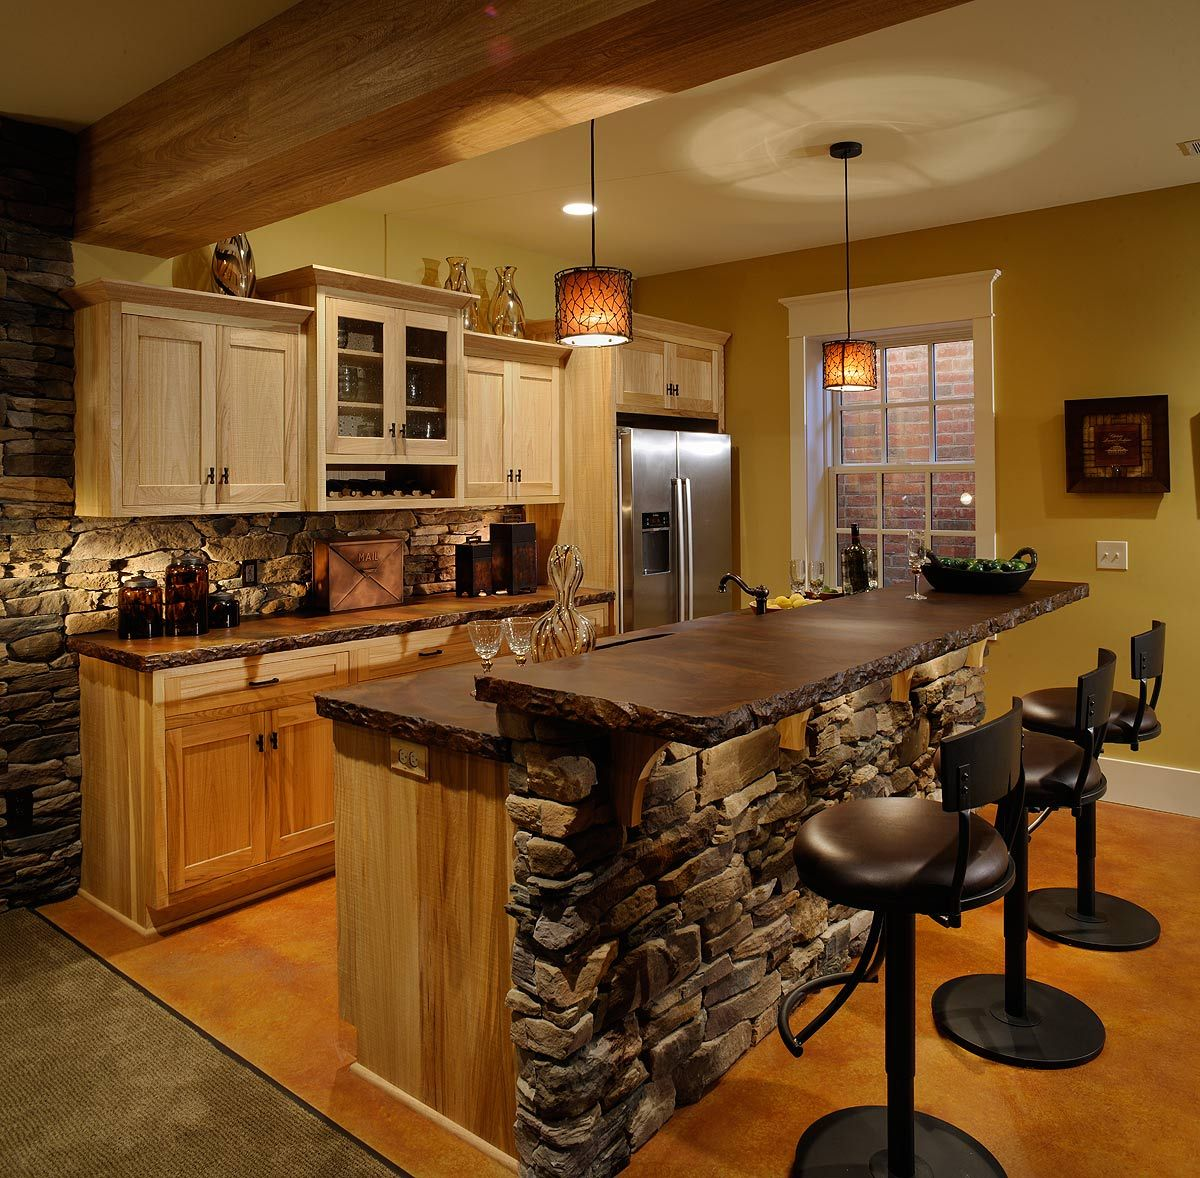 Rustic Kitchen Designs With Islands 15 Rustic Kitchen Design Photos  Millersburg Ohio Mullets And